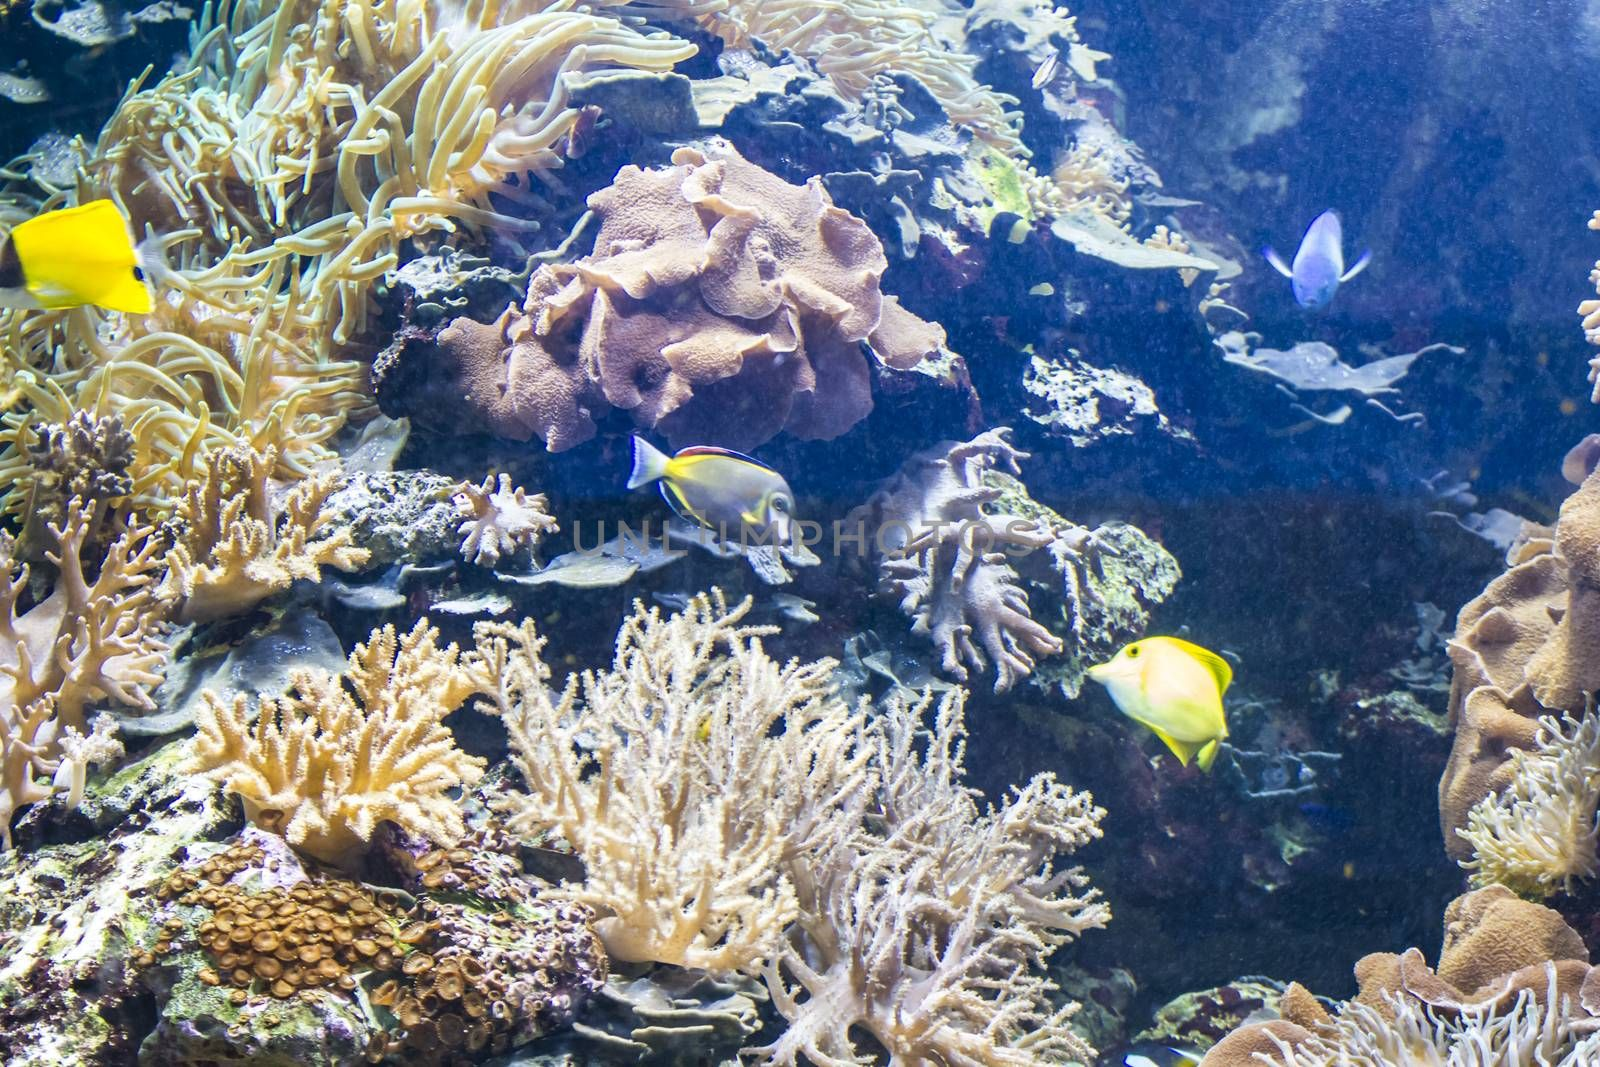 ecosystem, seabed with fish and coral reef